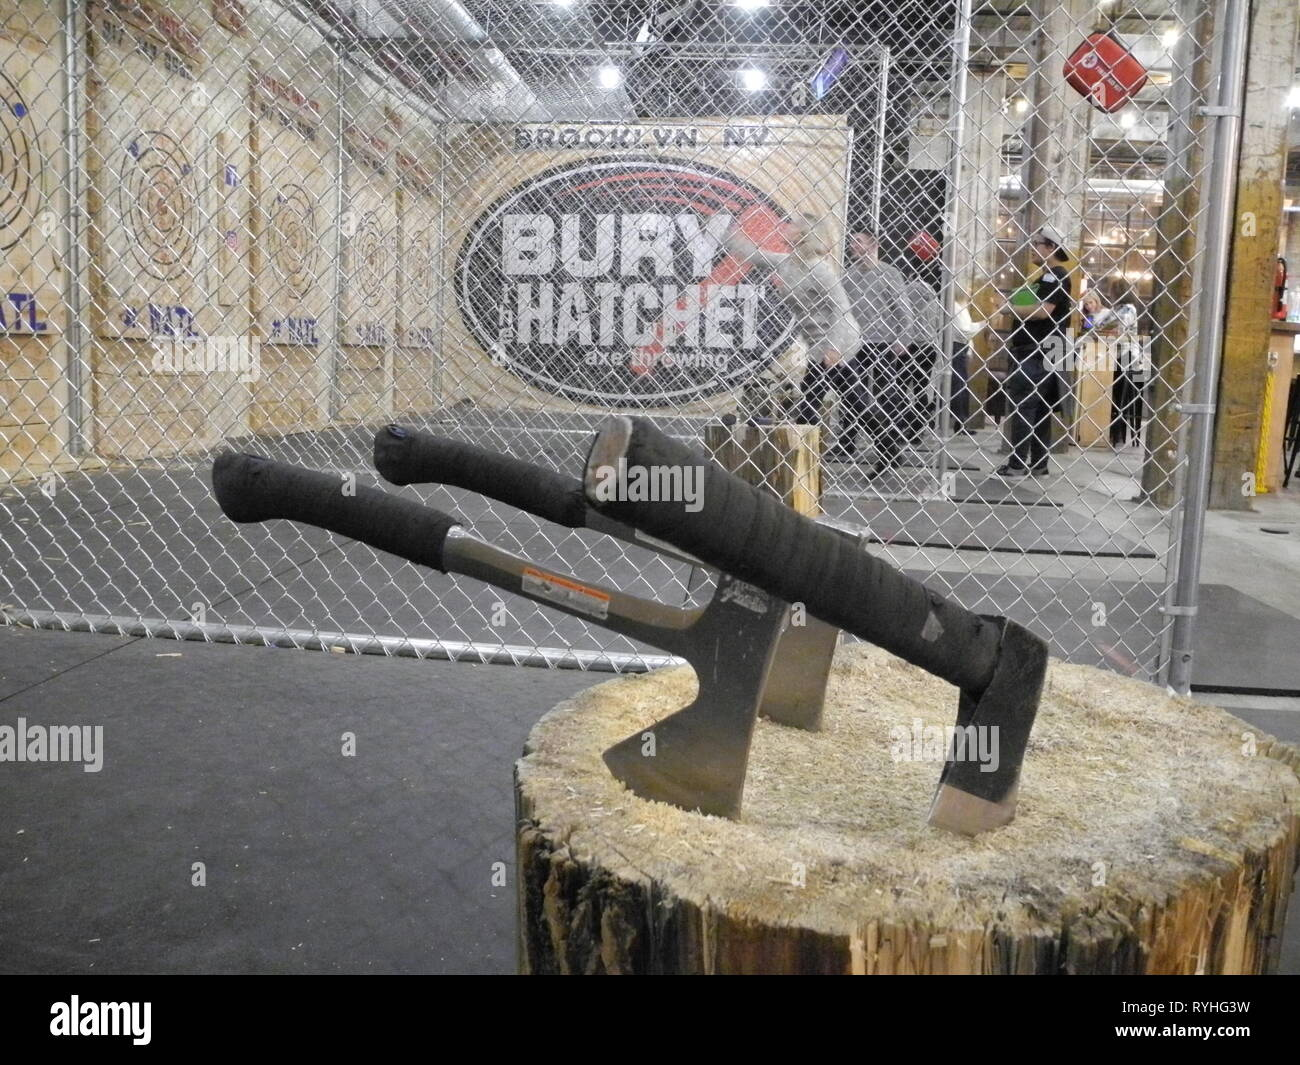 New York, USA. 15th Jan, 2019. Axes are stuck in a tree stump in a branch of the company Bury the Hatchet in New York's Brooklyn district, where guests can book a train to throw these hand axes at wooden targets. (to dpa - News from the scene - Instead of darts or bowling: Axe throwing becomes in the USA pub sport) Credit: Johannes Schmitt-Tegge/dpa/Alamy Live News Stock Photo